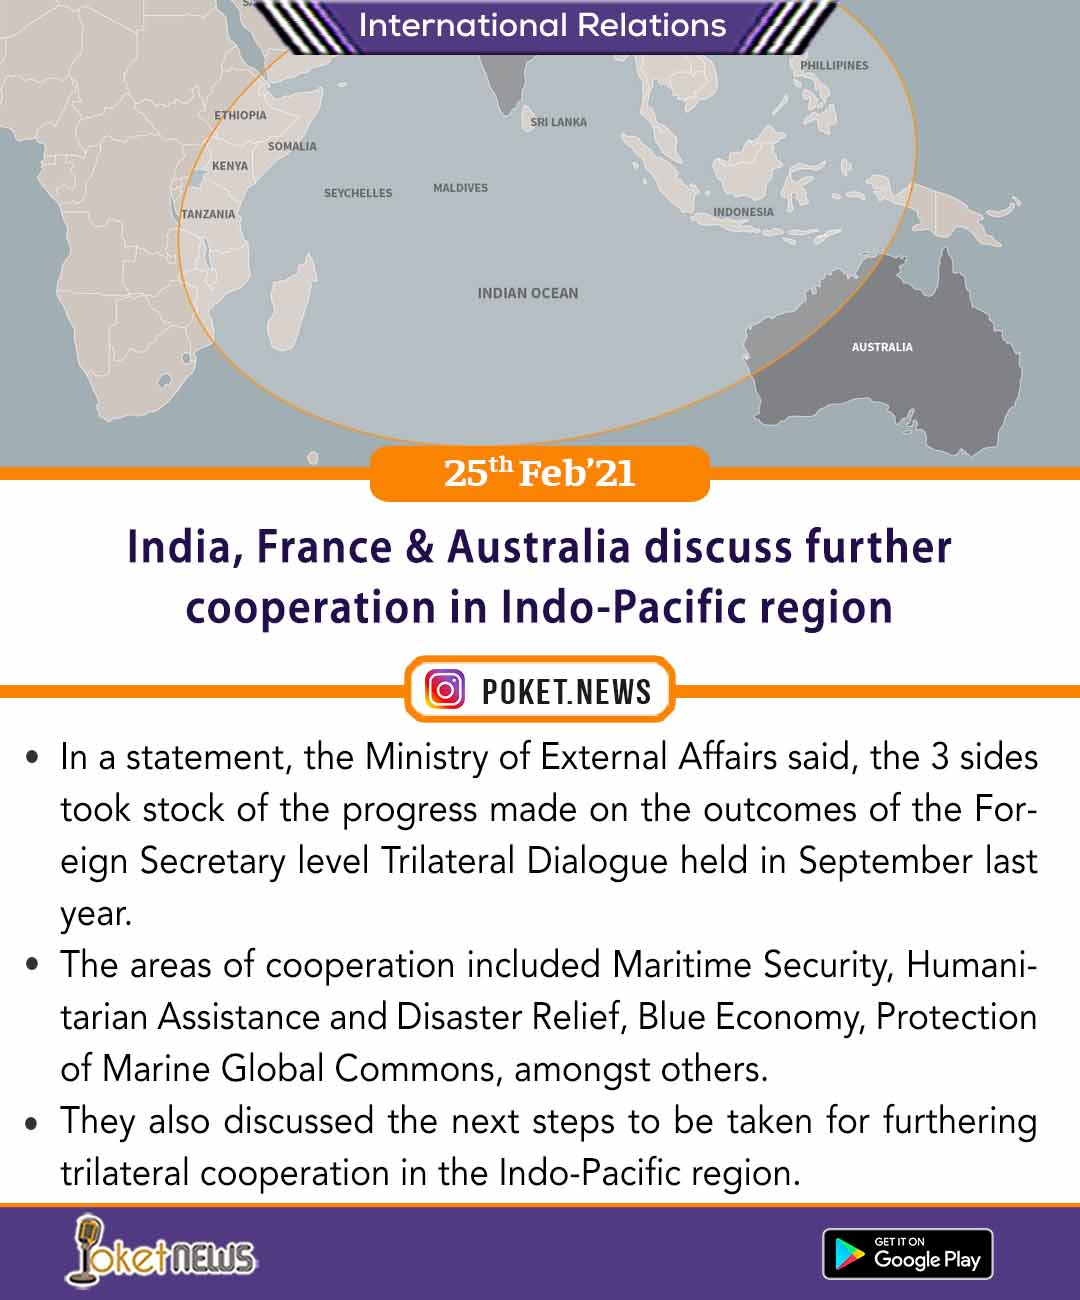 India, France & Australia discuss further cooperation in Indo-Pacific region